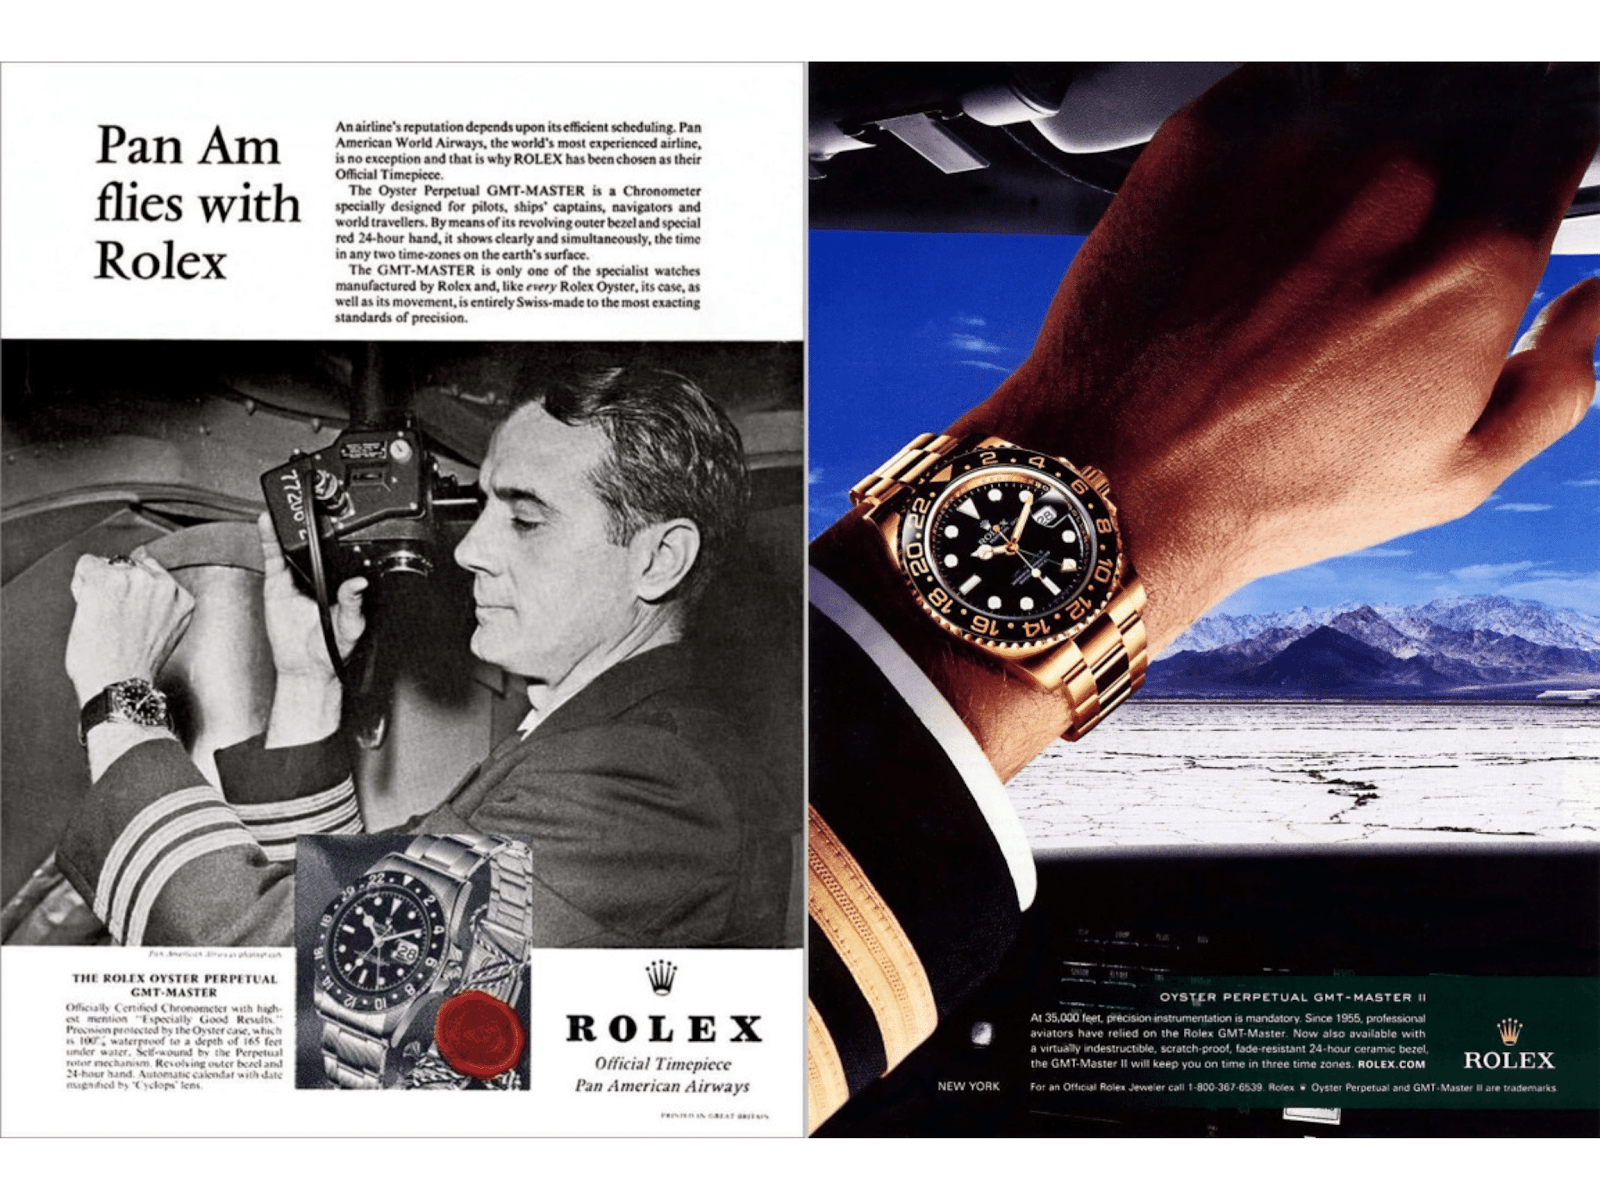 Two advertisements from Rolex Magazine, one that is advertising the Rolex GMT-Master Ref. 6542. The other is advertising the Rolex GMT-Master II.